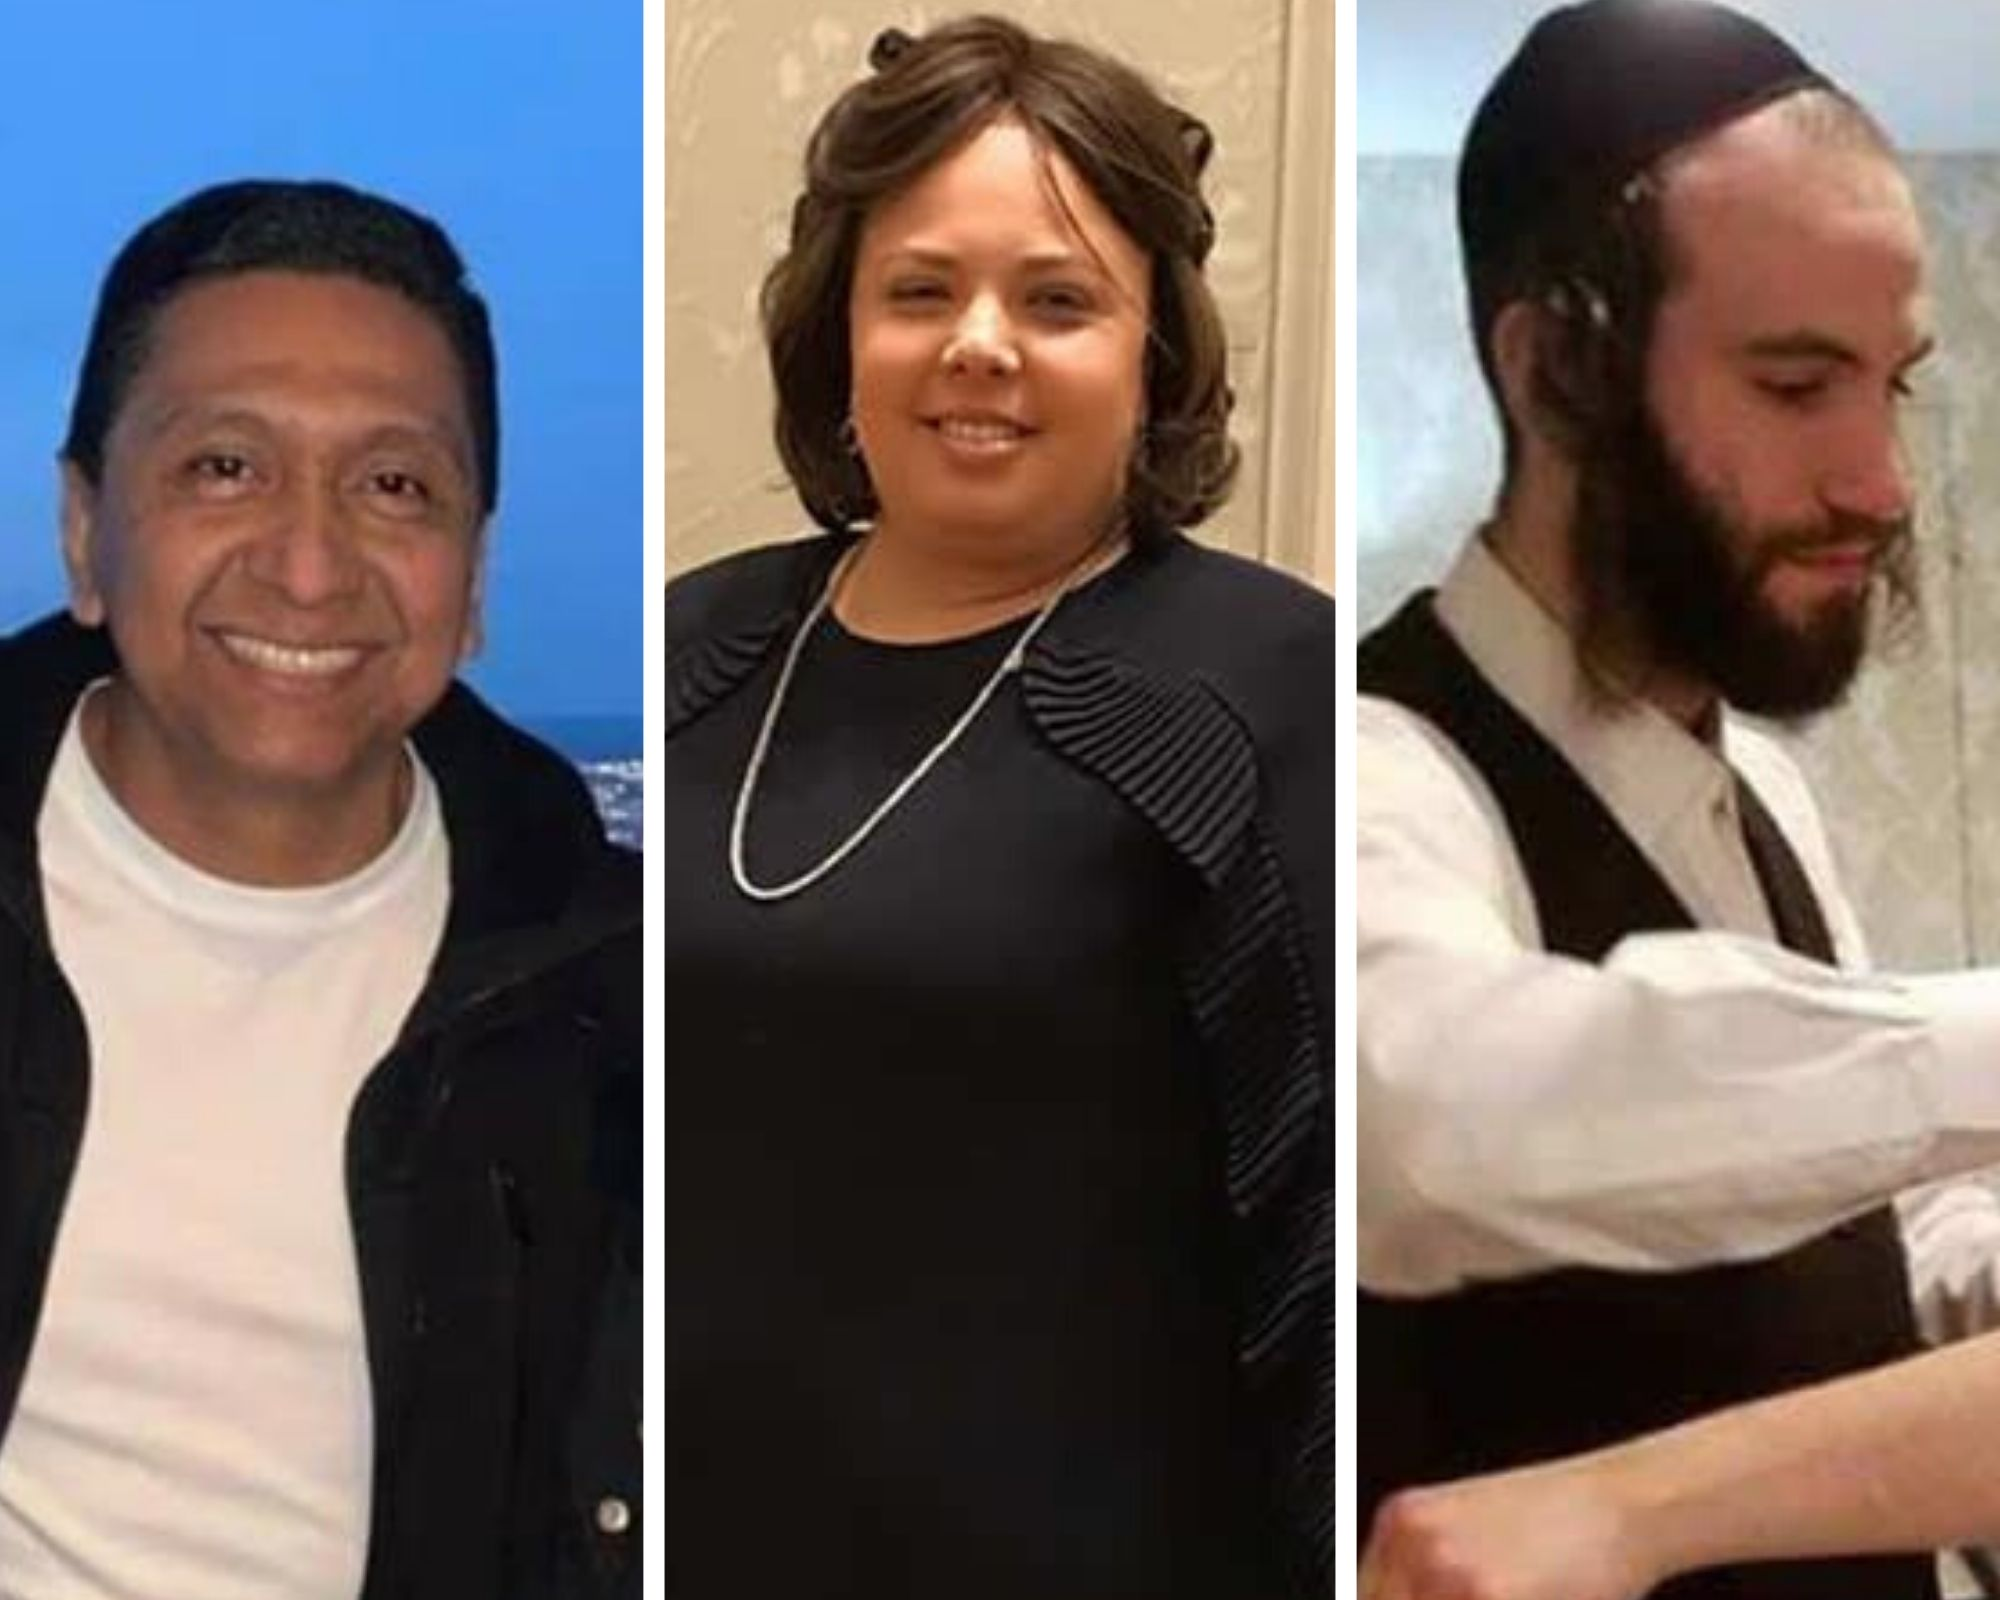 A mother, a volunteer, a worker. Jersey City shooting victims remembered for selflessness